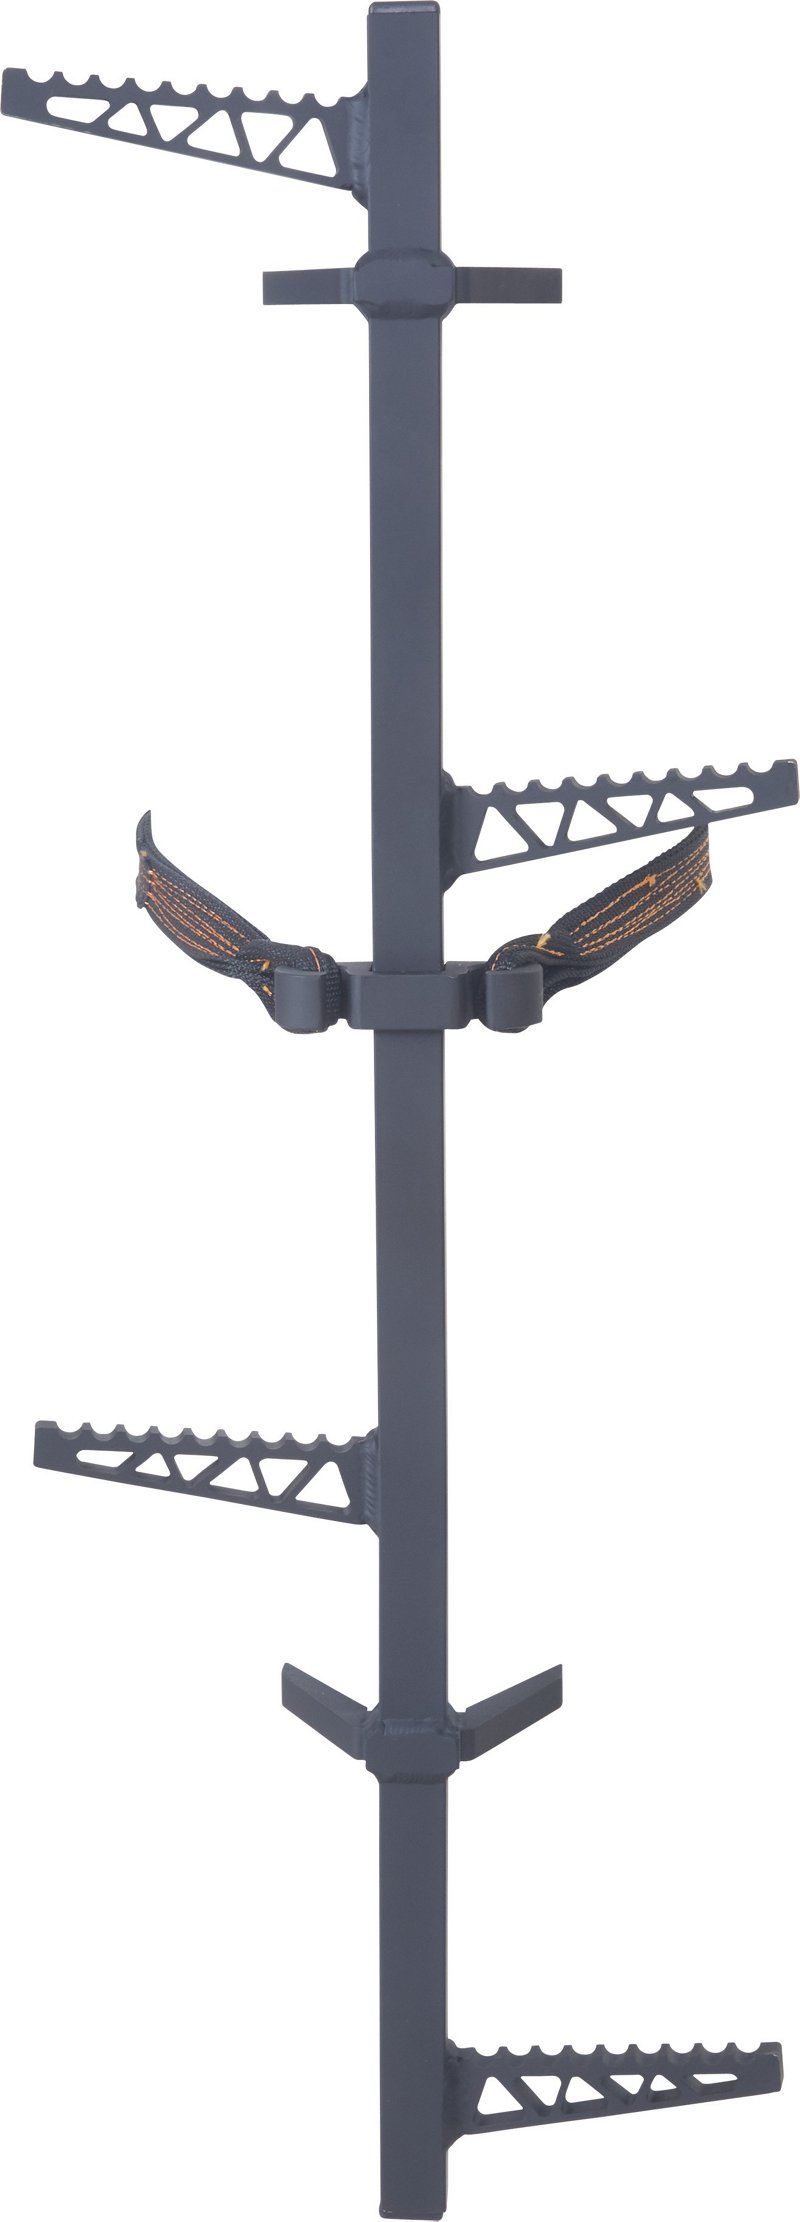 Millennium M250 Aluminum Hang-On Climbing Sticks 4-Pack - Hunting Stands/Blinds/Accessories at Academy Sports thumbnail